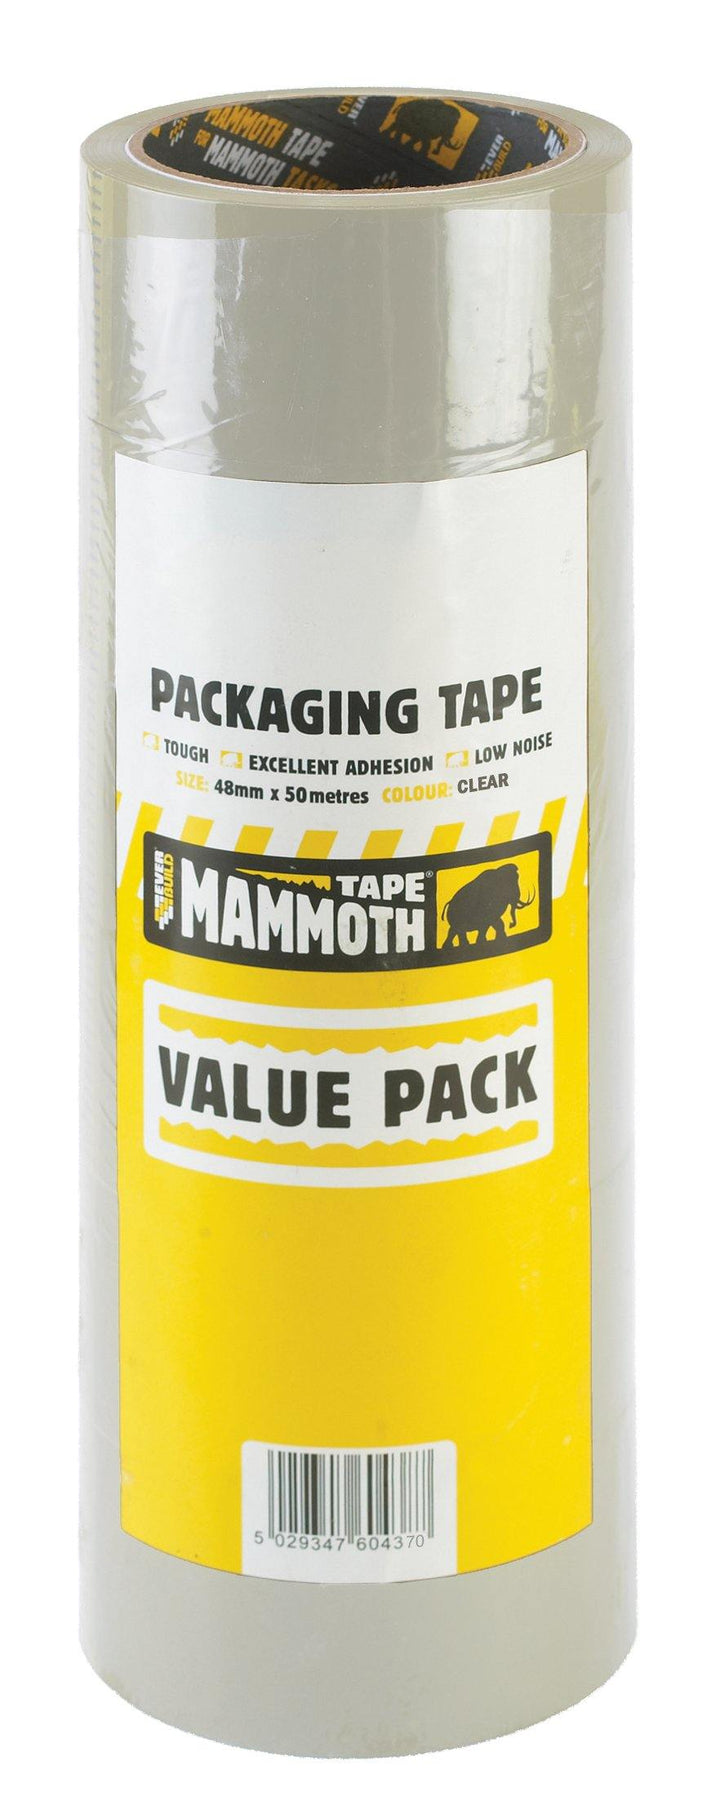 Everbuild Mammoth Value Pack Packaging Tape - HomeFix